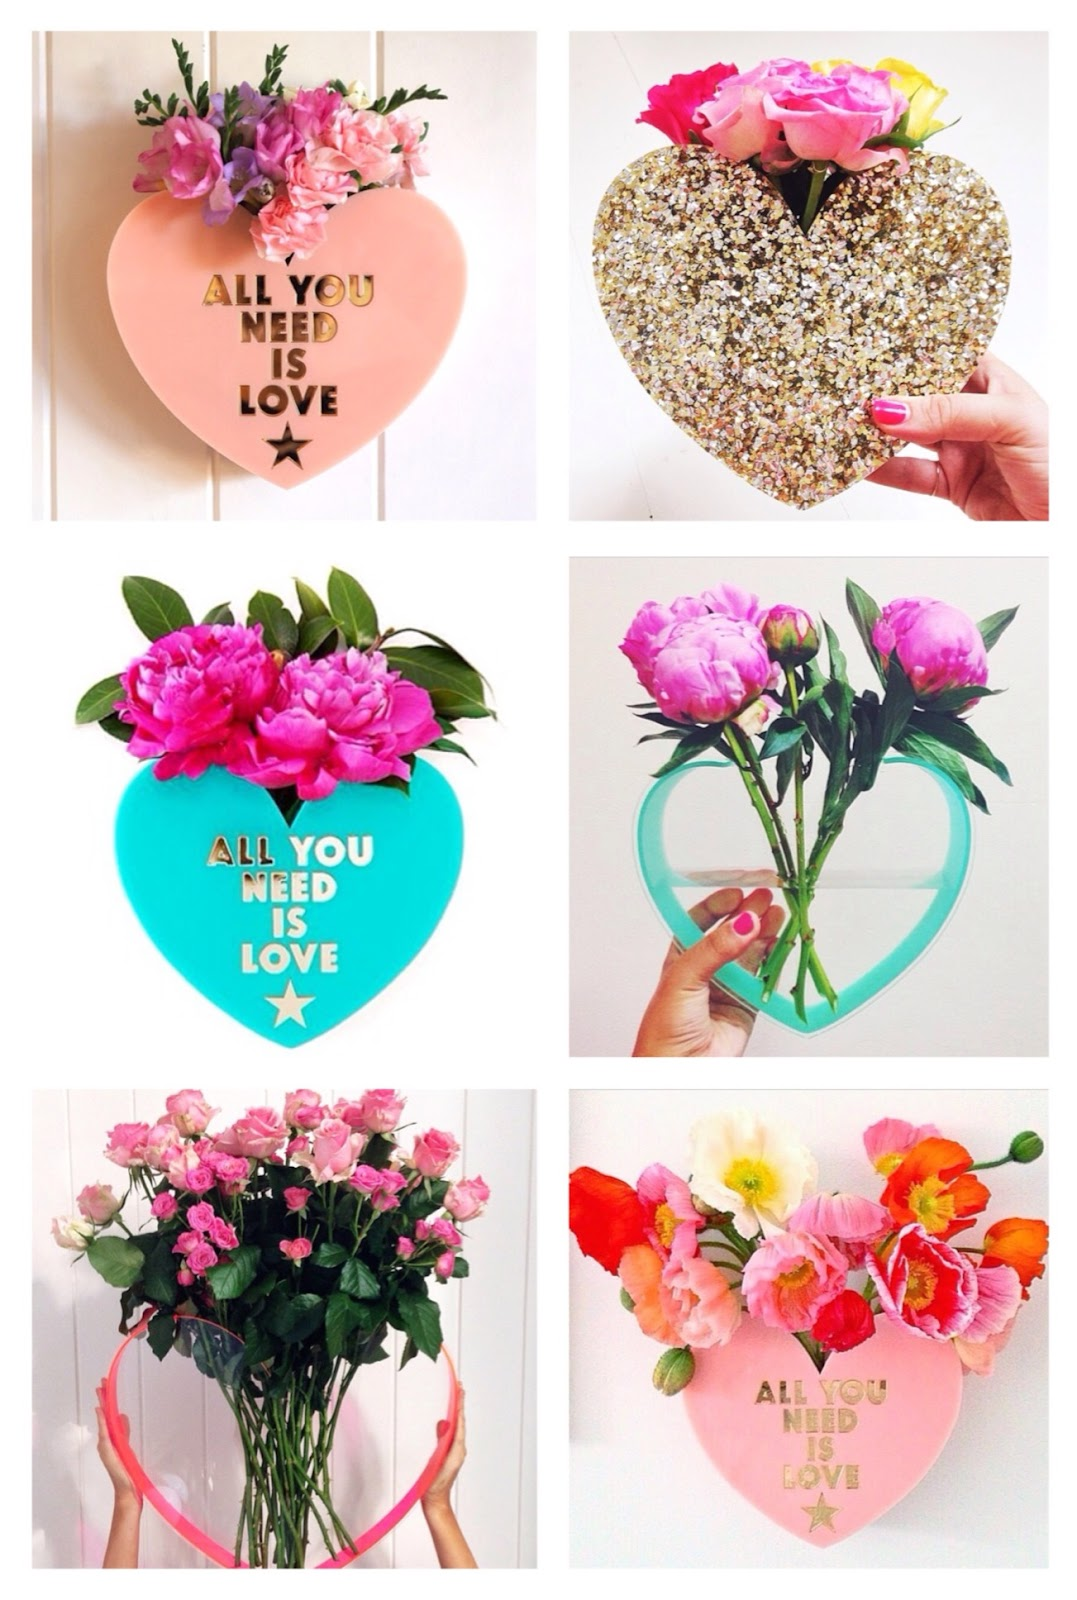 love star fower vases, lovestar, all you need is love floral arrangement, glitter vase, transparent water flower vase